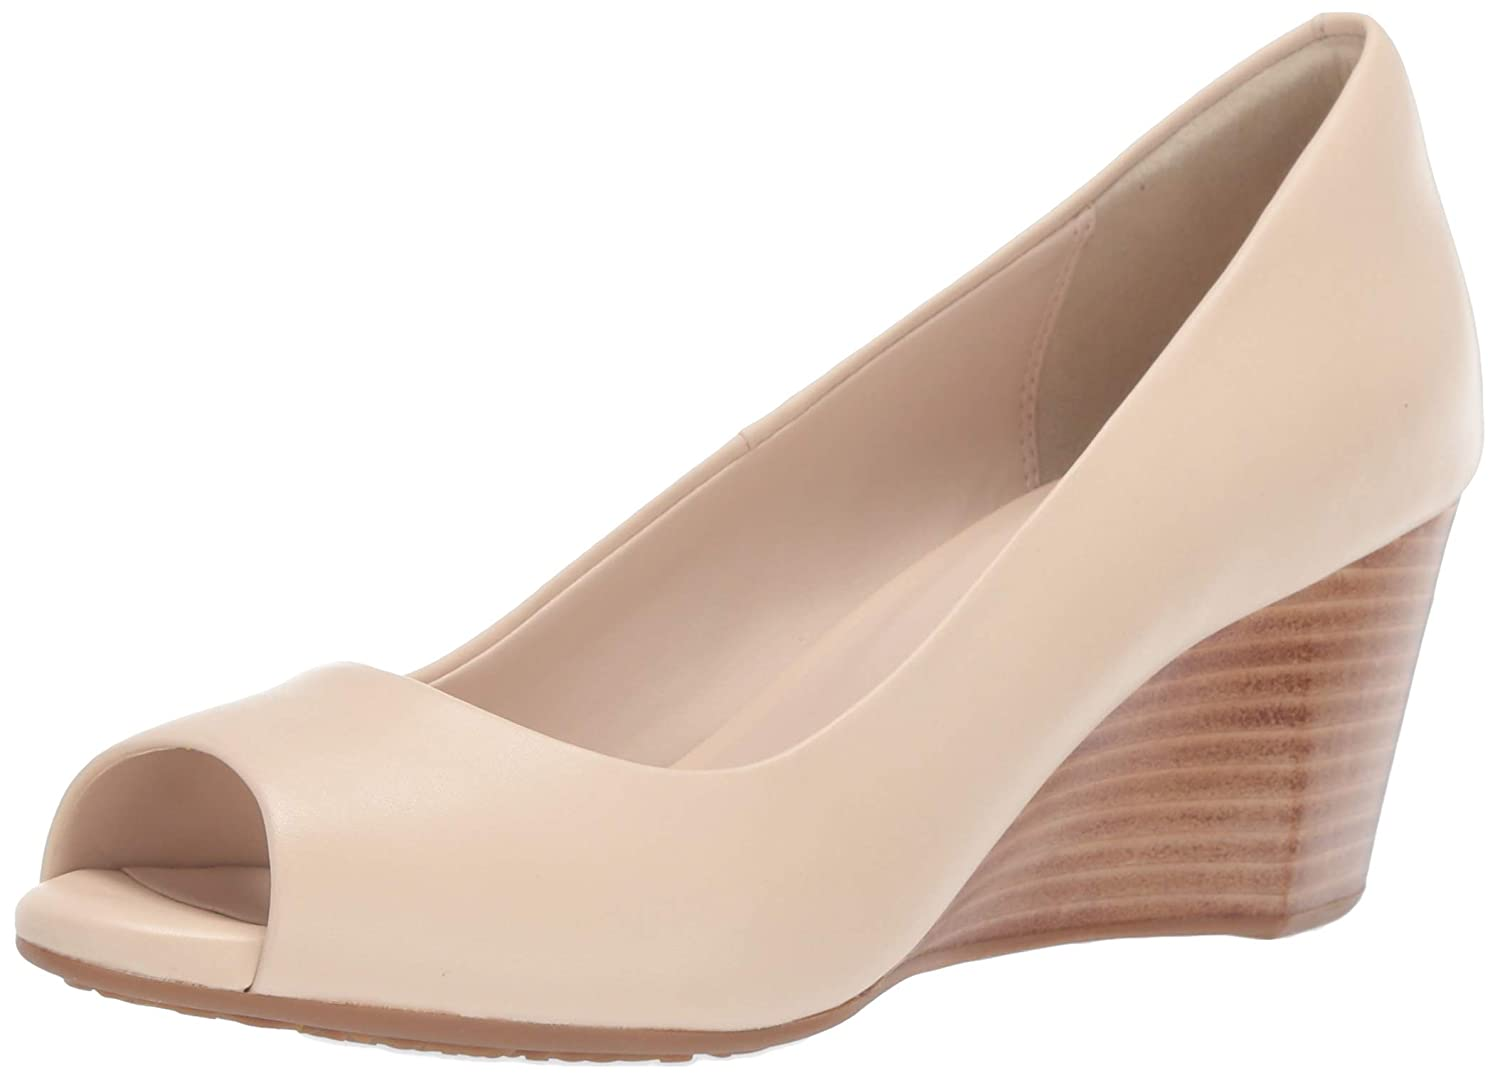 Brazilian Sand Leather Cole Haan Womens Sadie Open Toe Wedge 65mm Pump